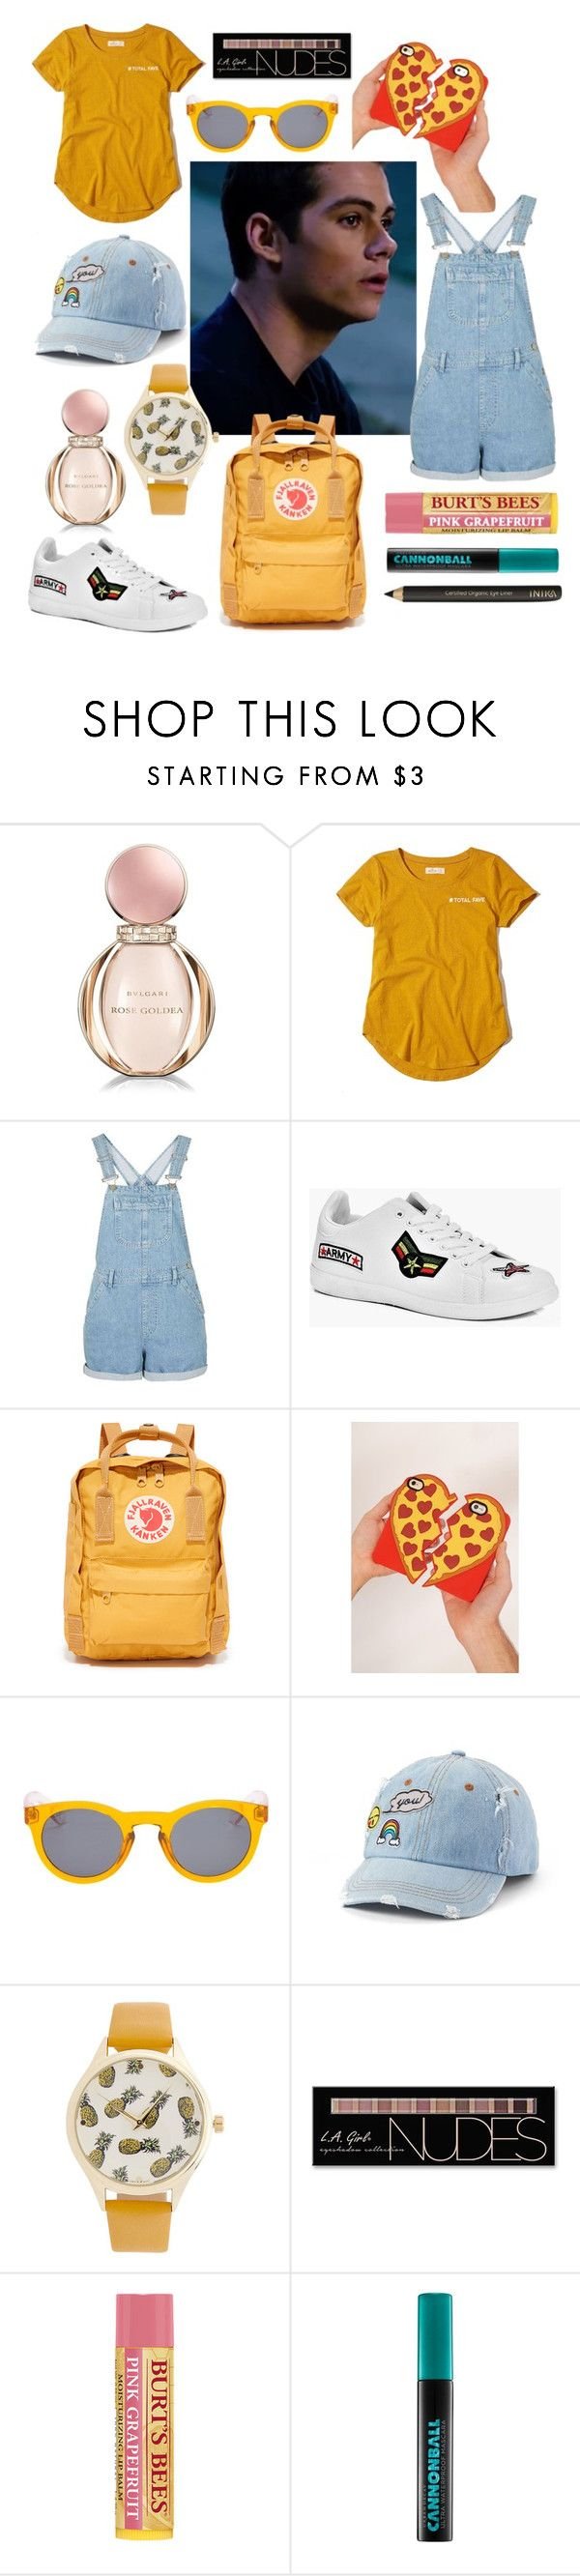 """""""You're the Only Pizza Me I Need"""" by shaetabor ❤ liked on Polyvore featuring Bulgari, Hollister Co., Boohoo, Fjällräven, Urban Outfitters, Vans, SO, Charlotte Russe and Urban Decay"""